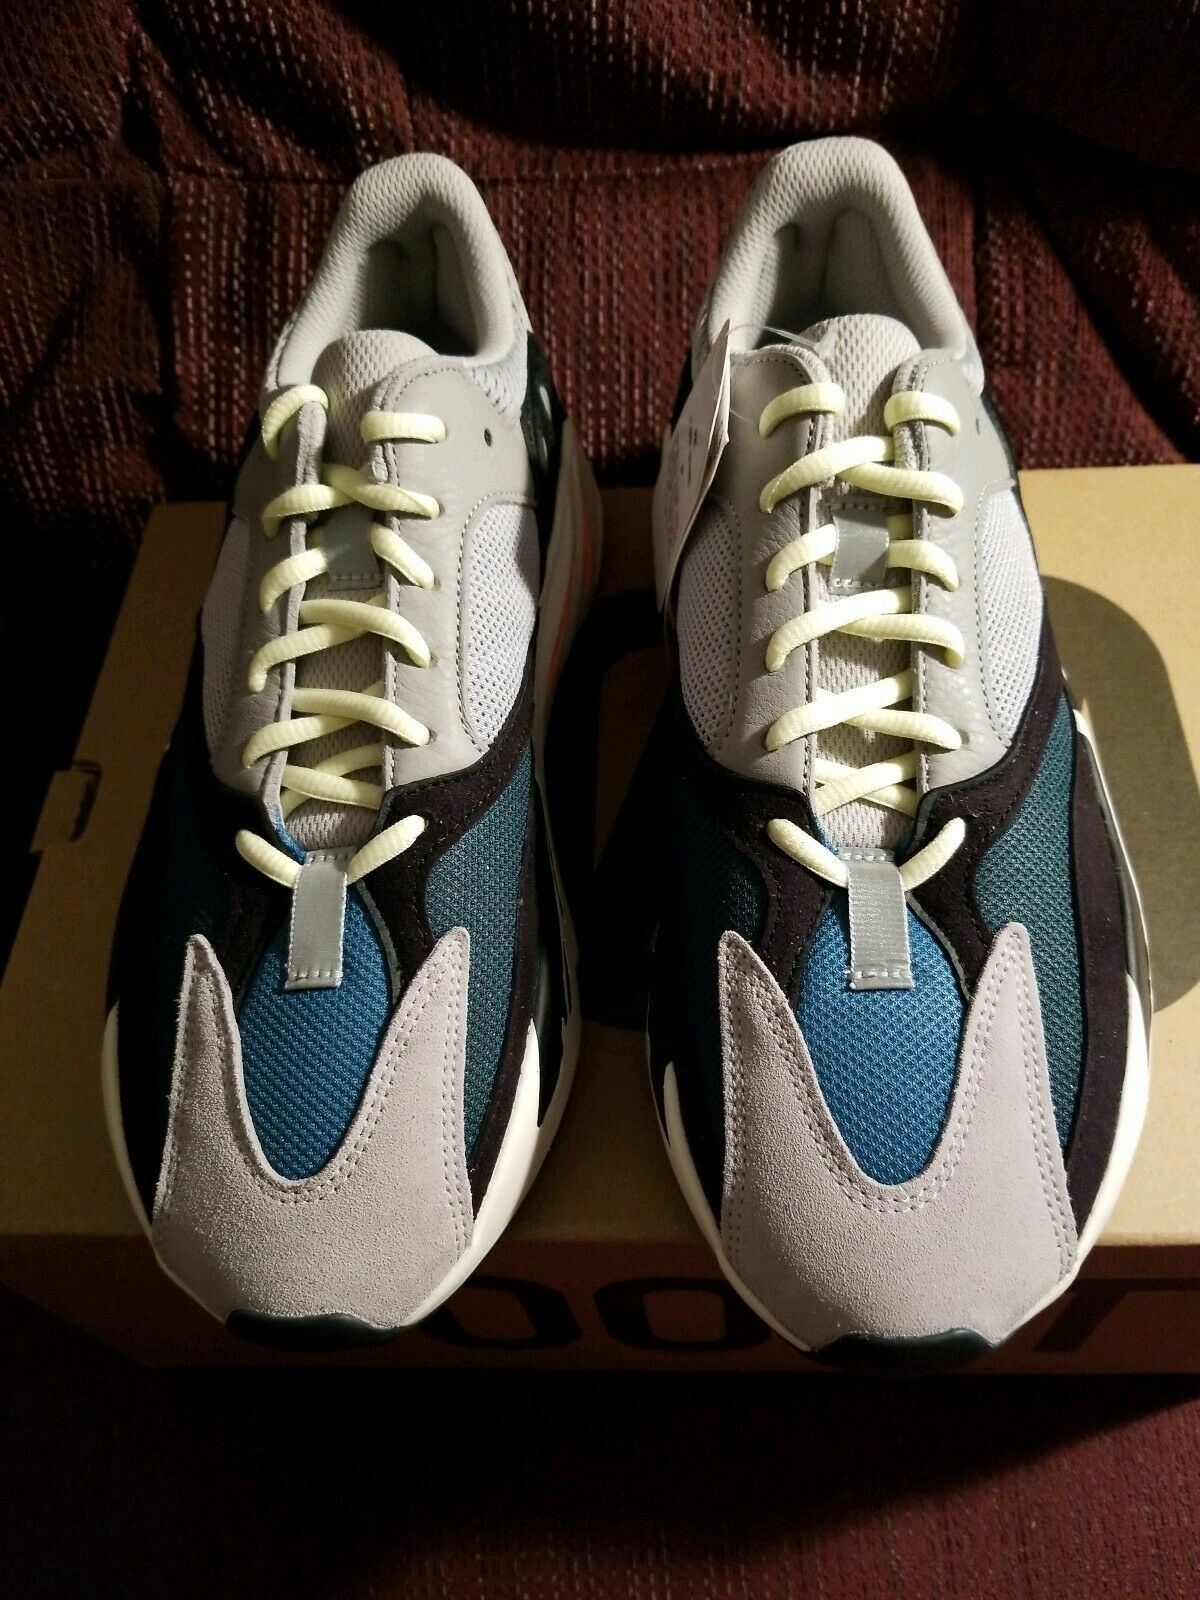 Adidas Yeezy Boost 700 Wave Runner Authentic Size 11